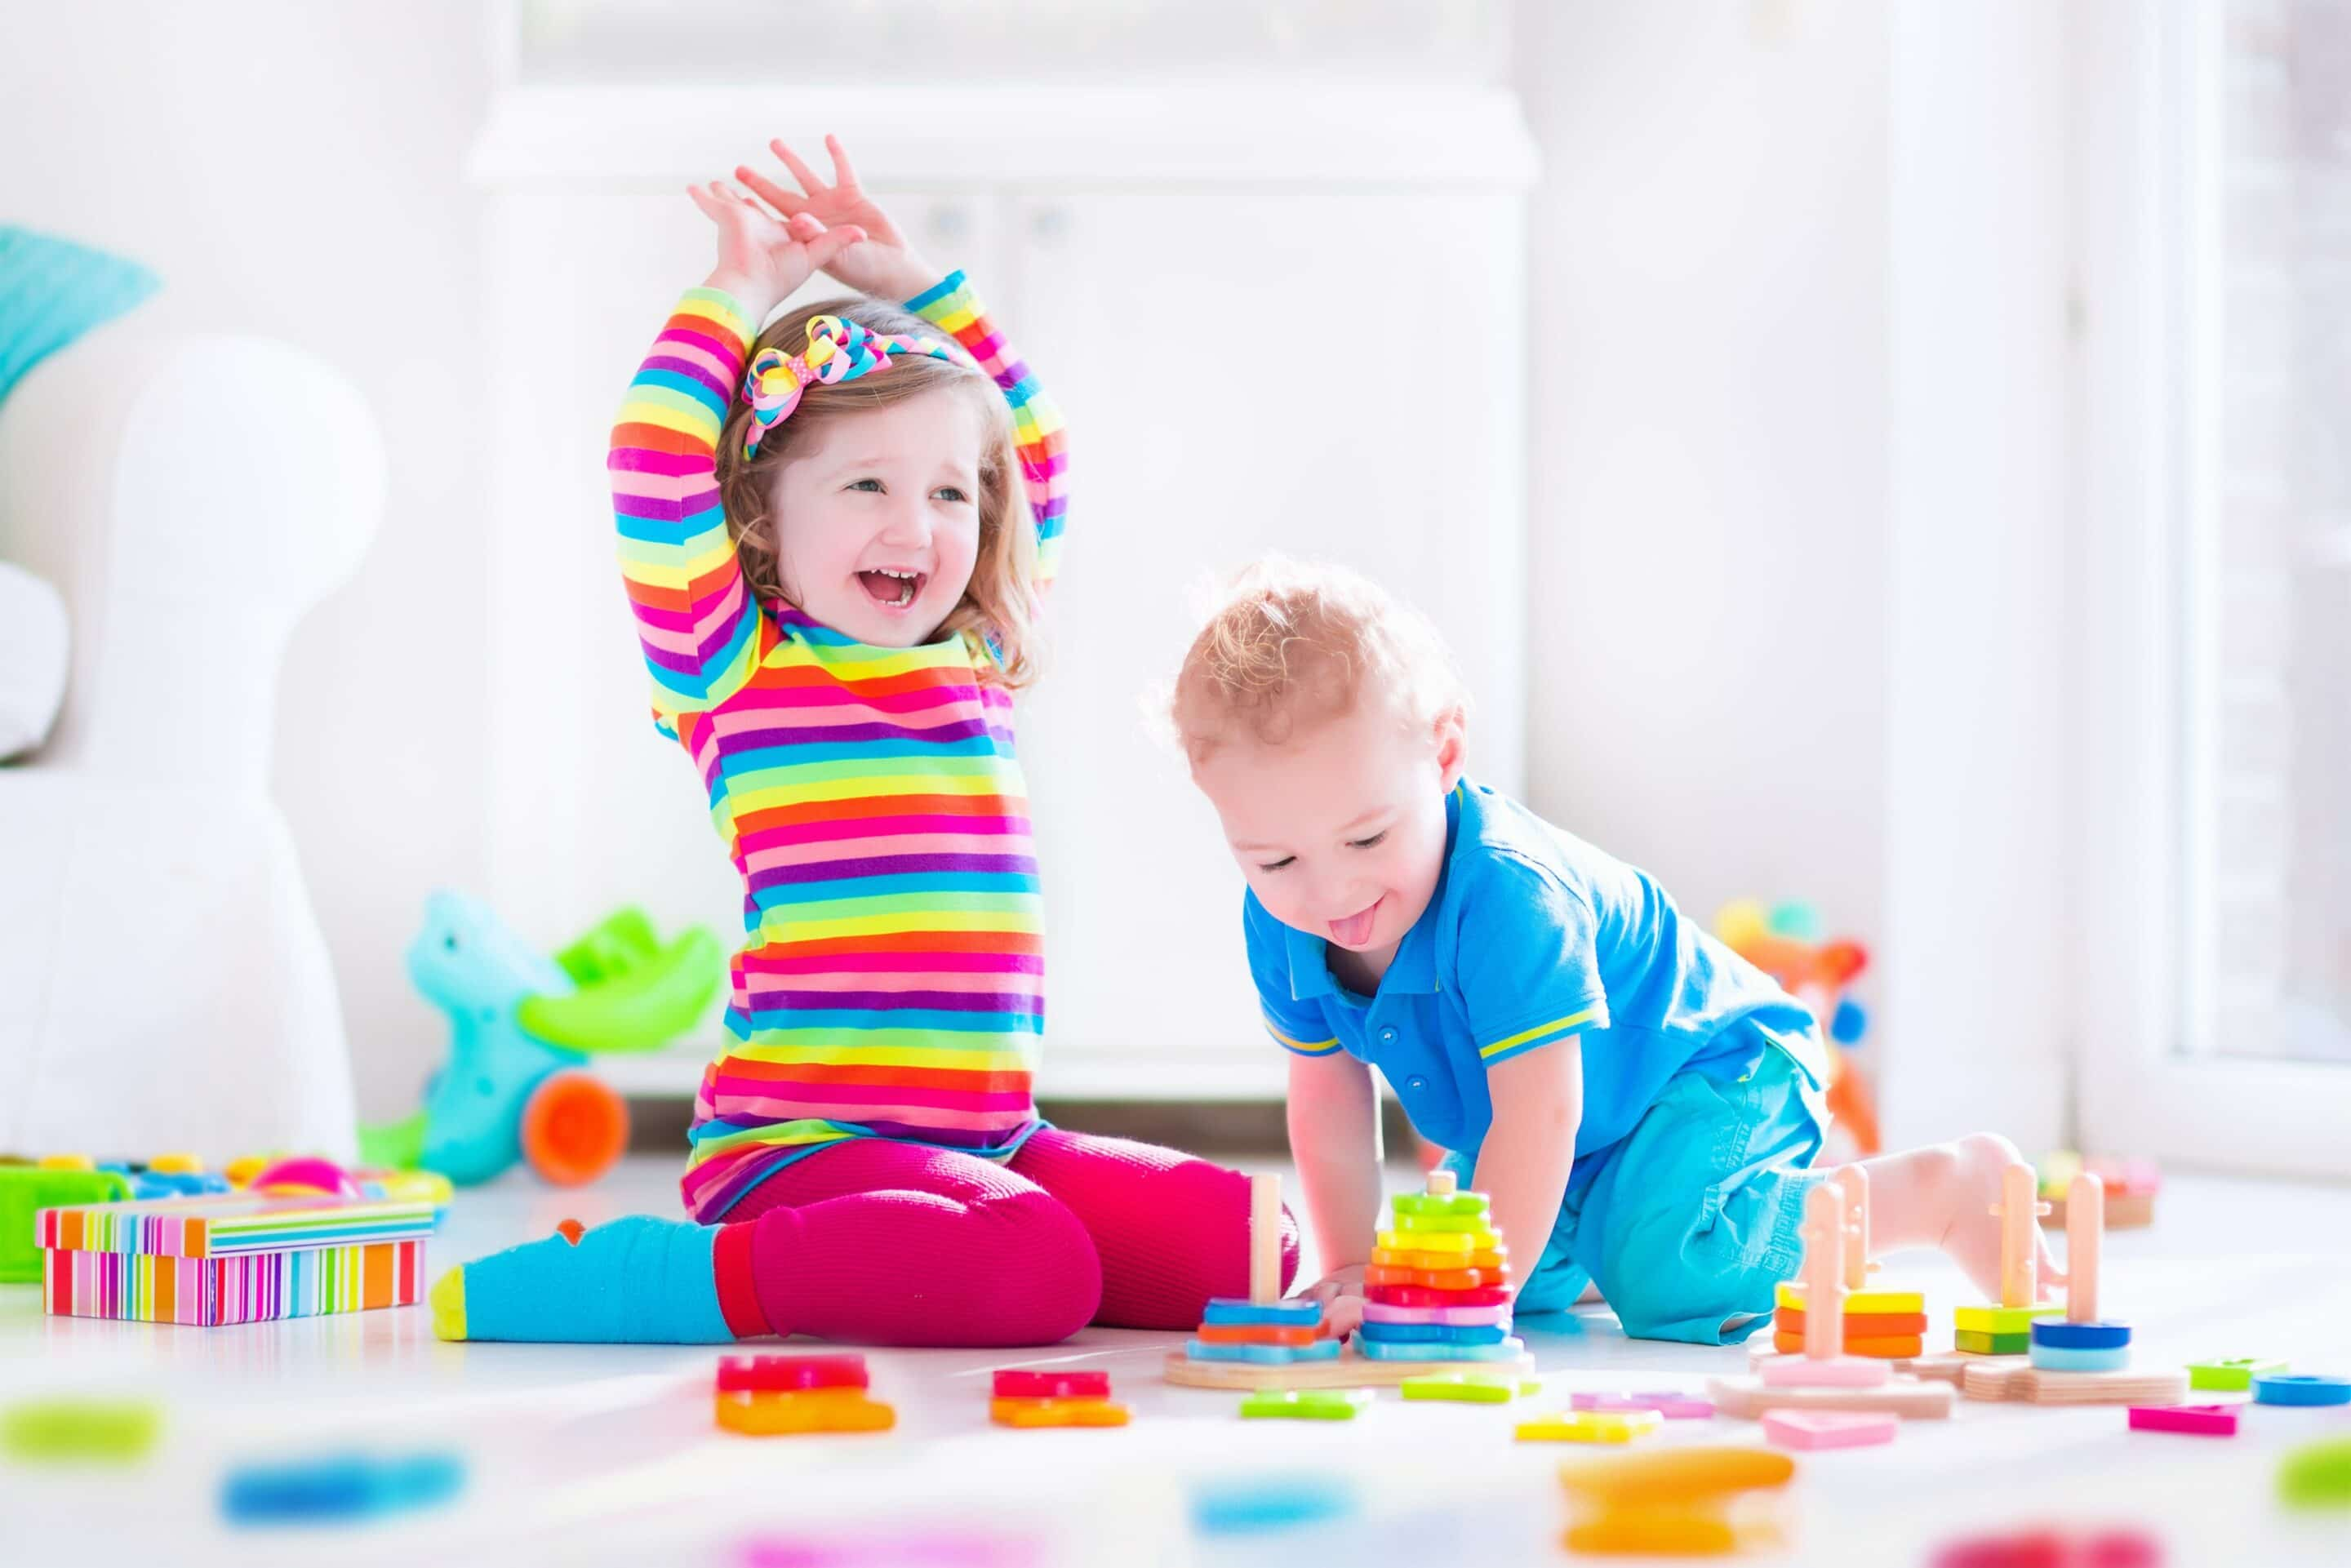 Two young children playing on a mat with coloured blocks.